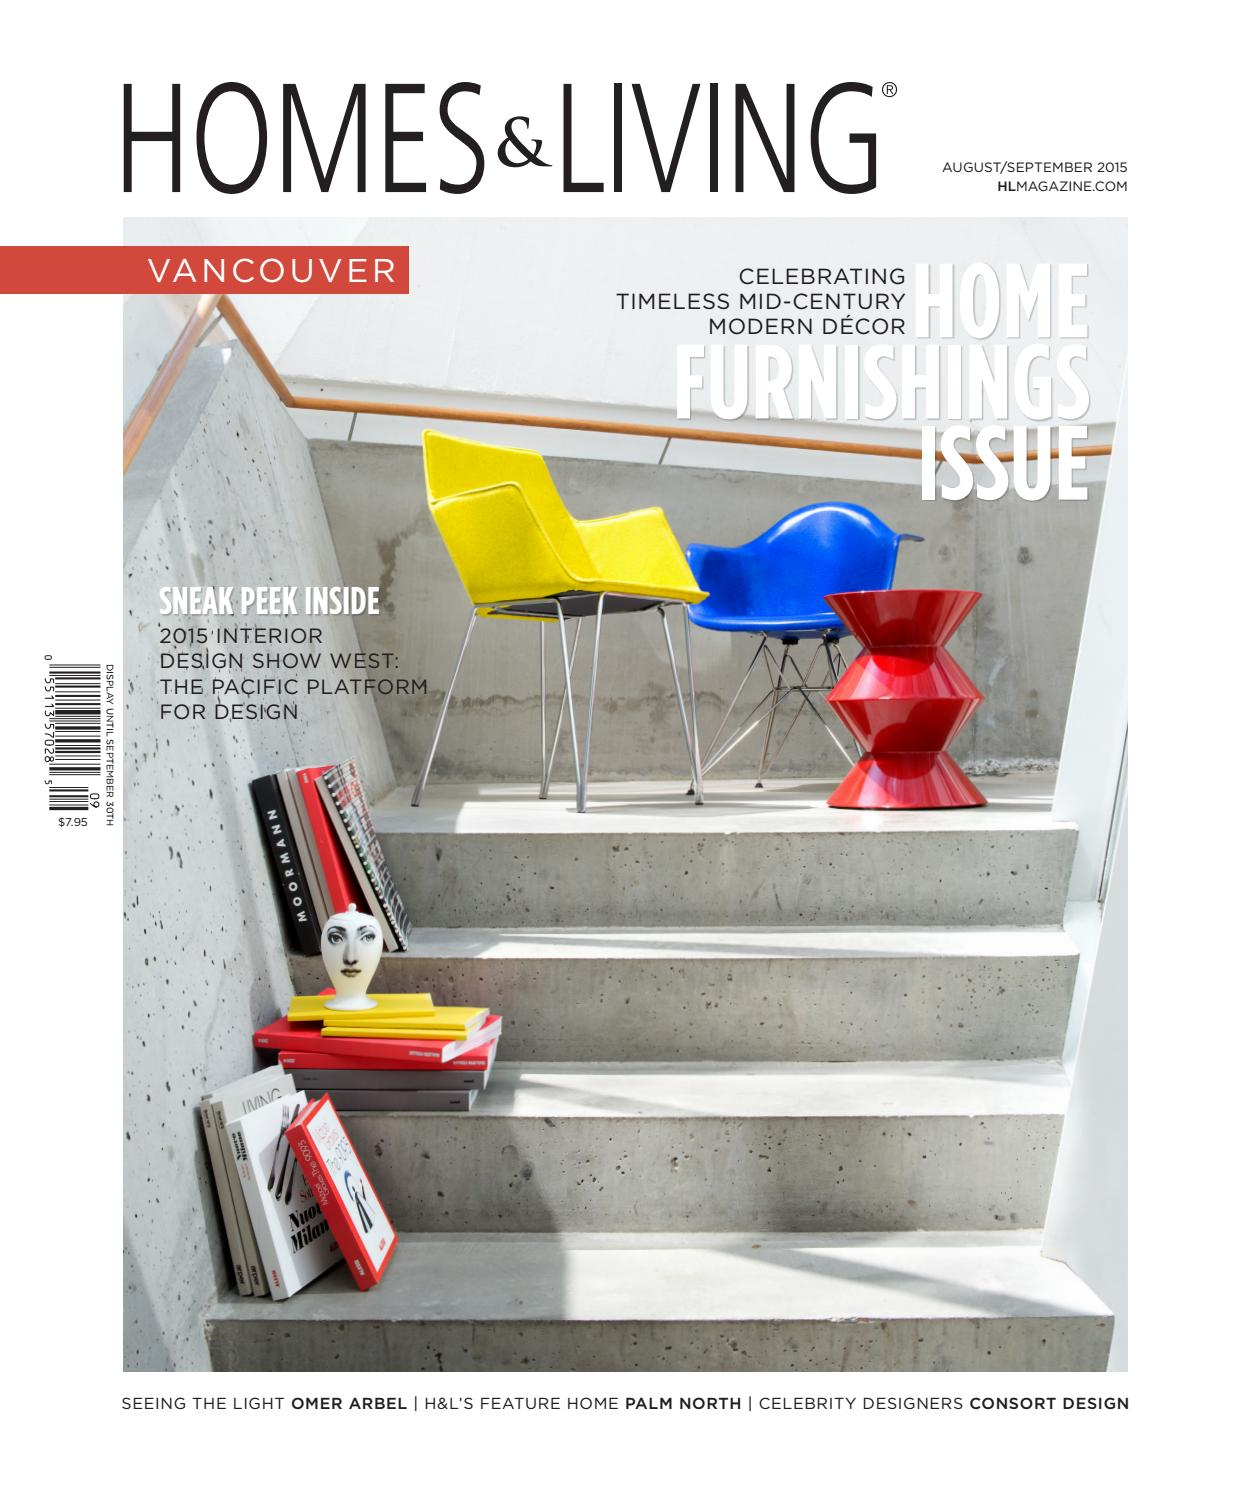 Vancouver Living: Homes & Living Vancouver Aug/Sept 2015 By Homes & Living